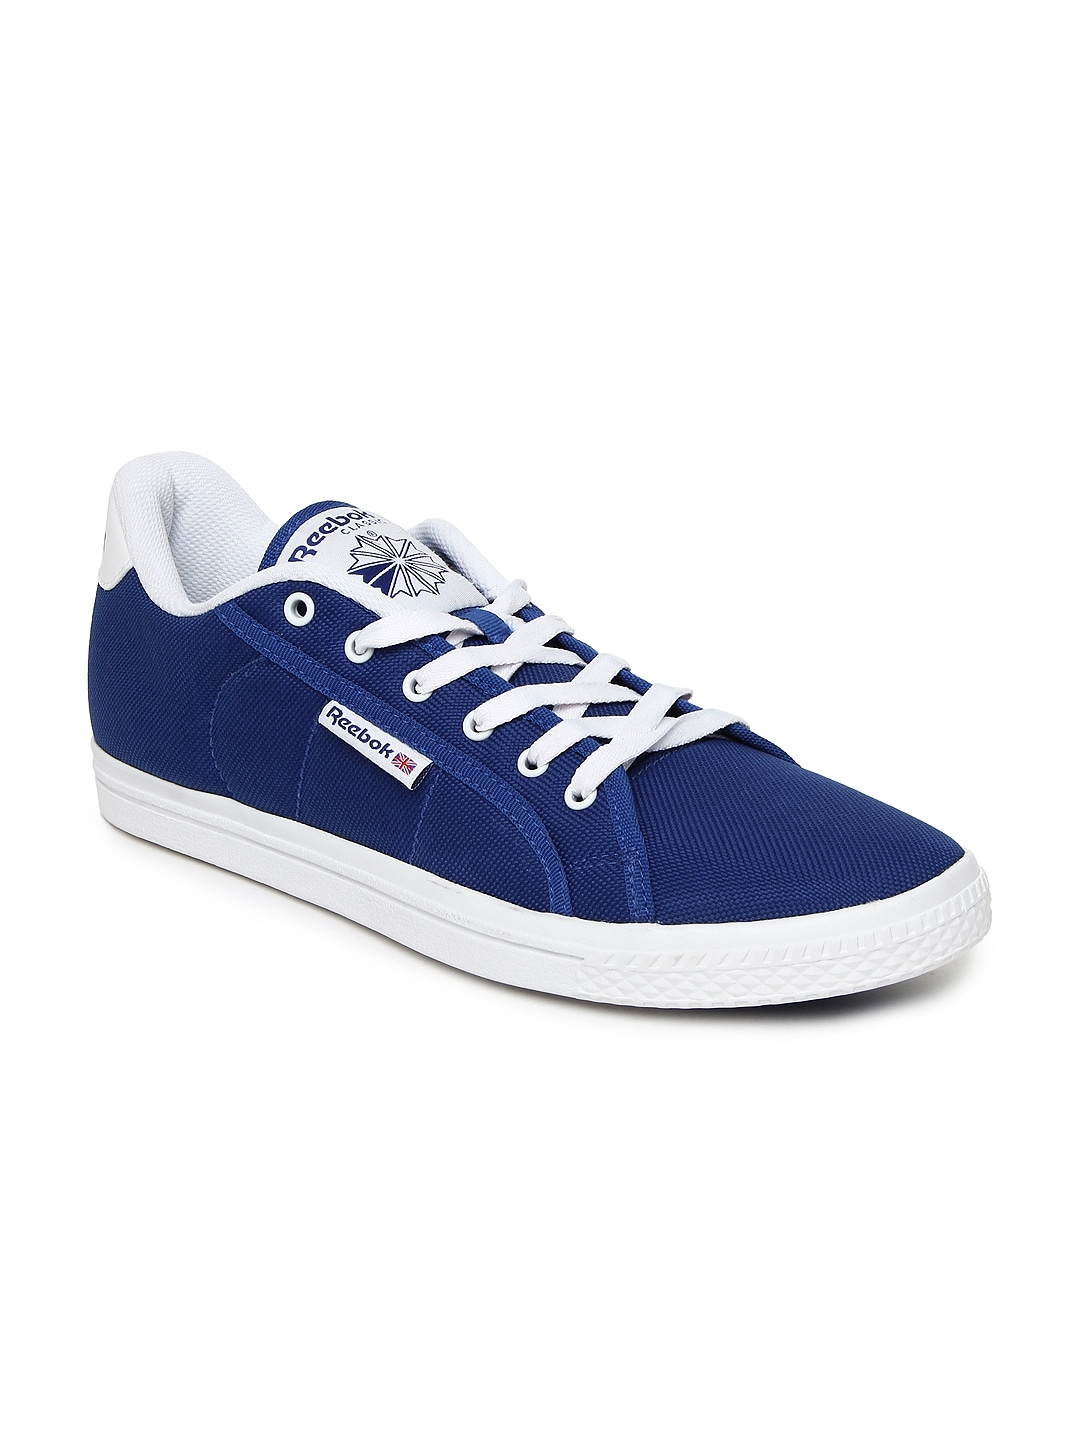 307ff02e36bbe1 Reebok v48884 Men Blue On Court Iii Lp Casual Shoes - Best Price in ...